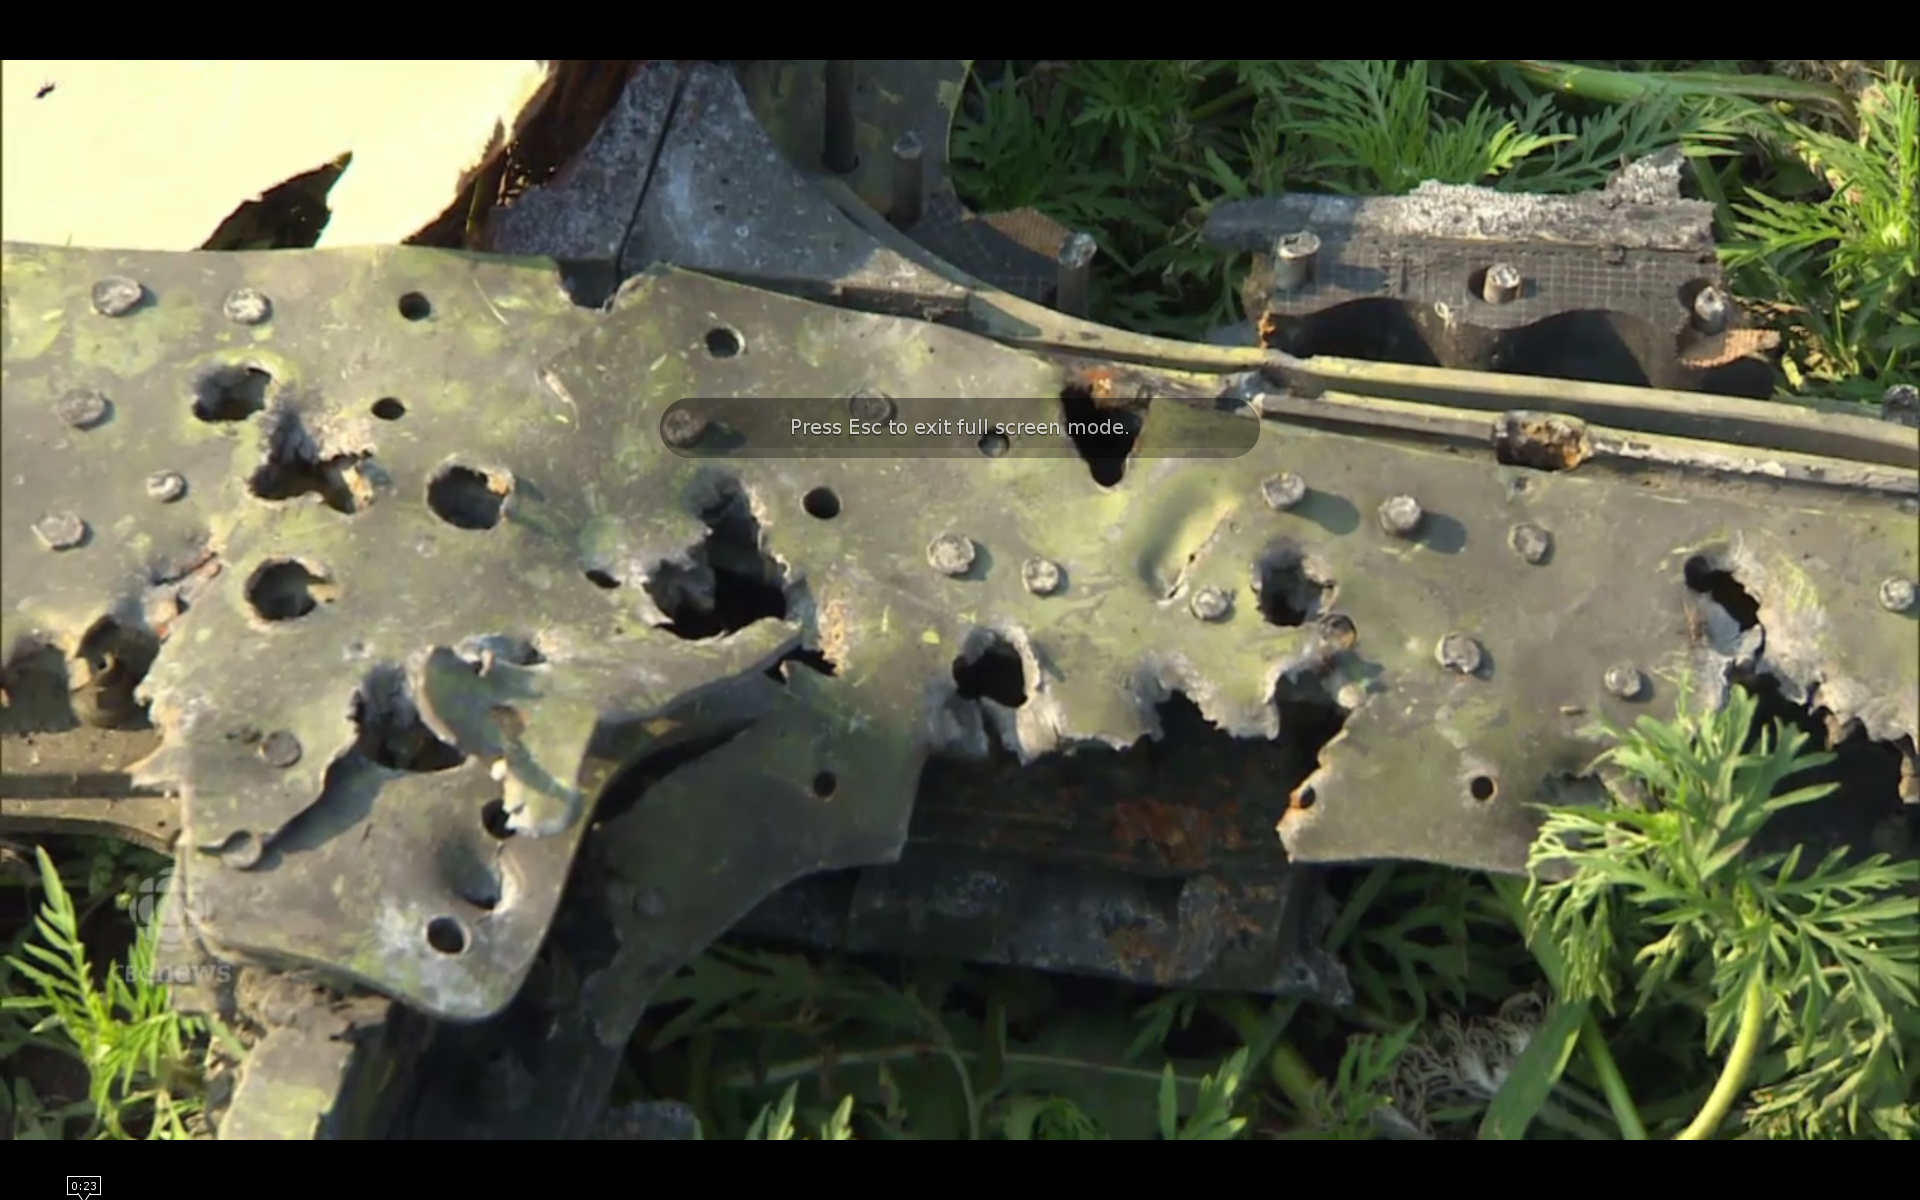 MH17_cockpit_right_window_frame_bullet_holes